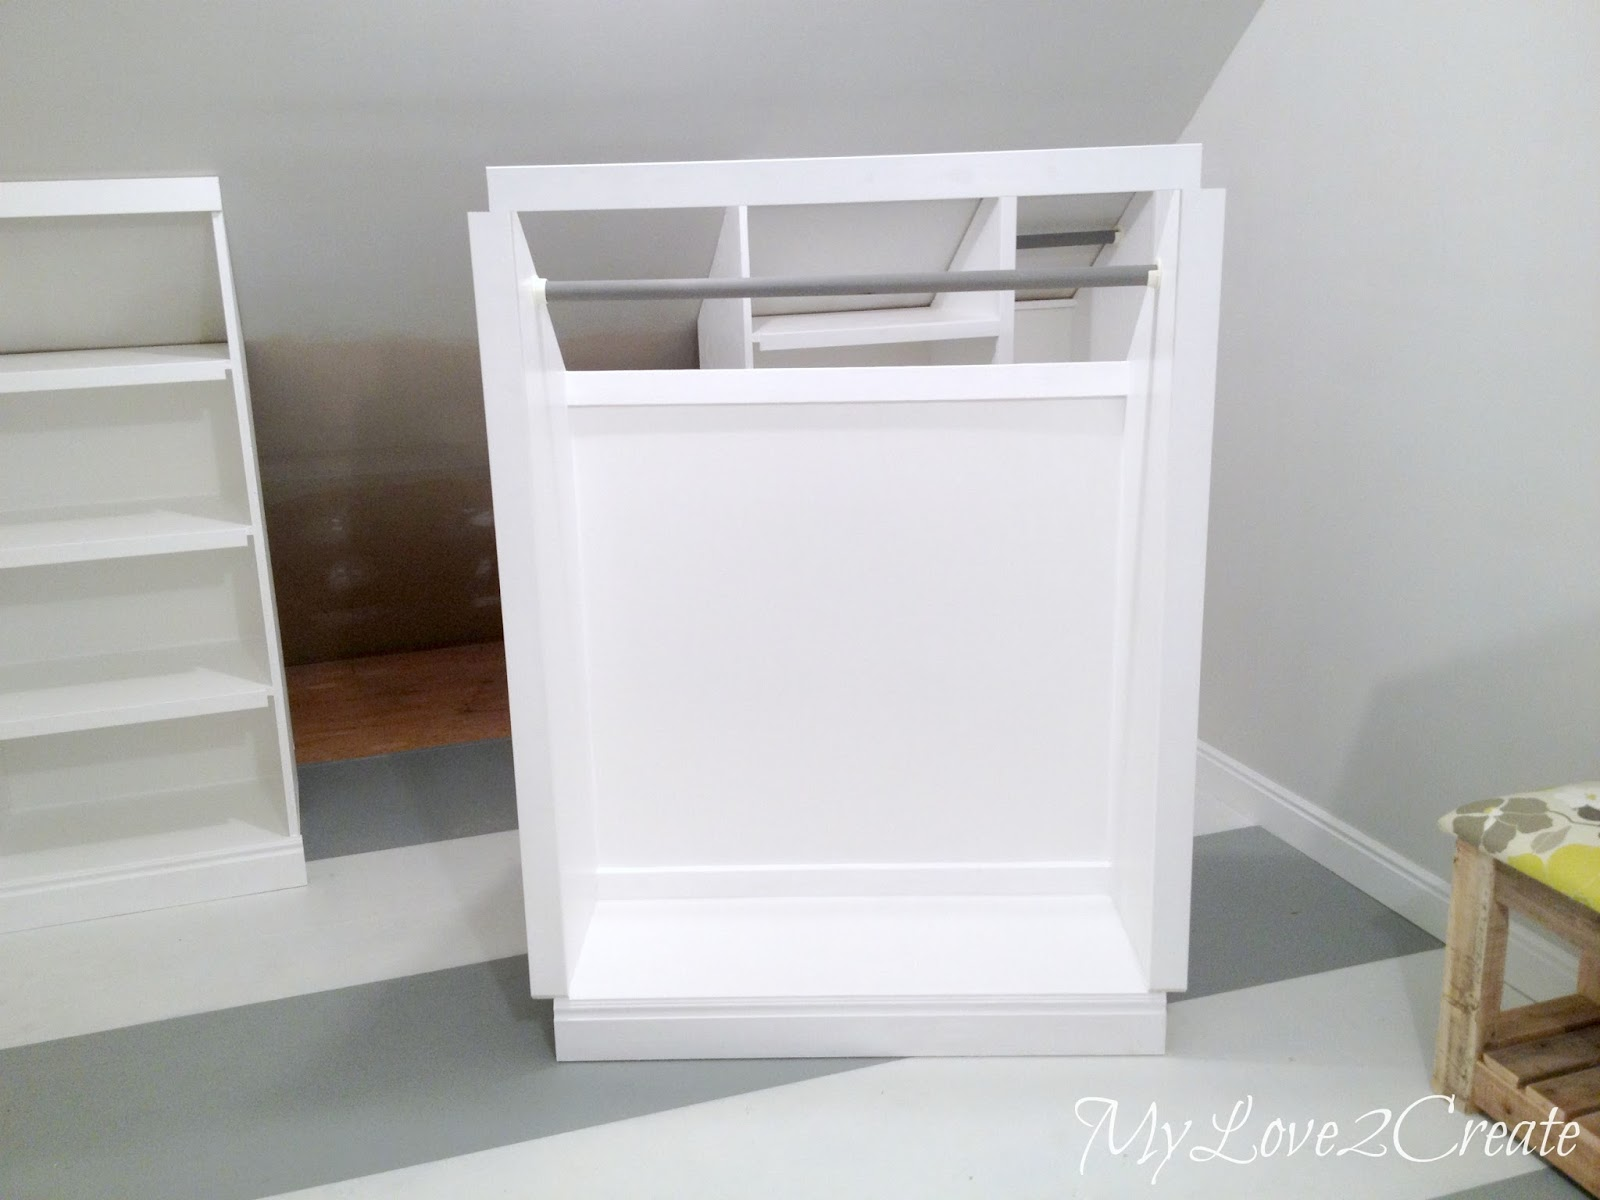 bedroom attic storage ideas - Slanted Wall built ins with Hidden Storage